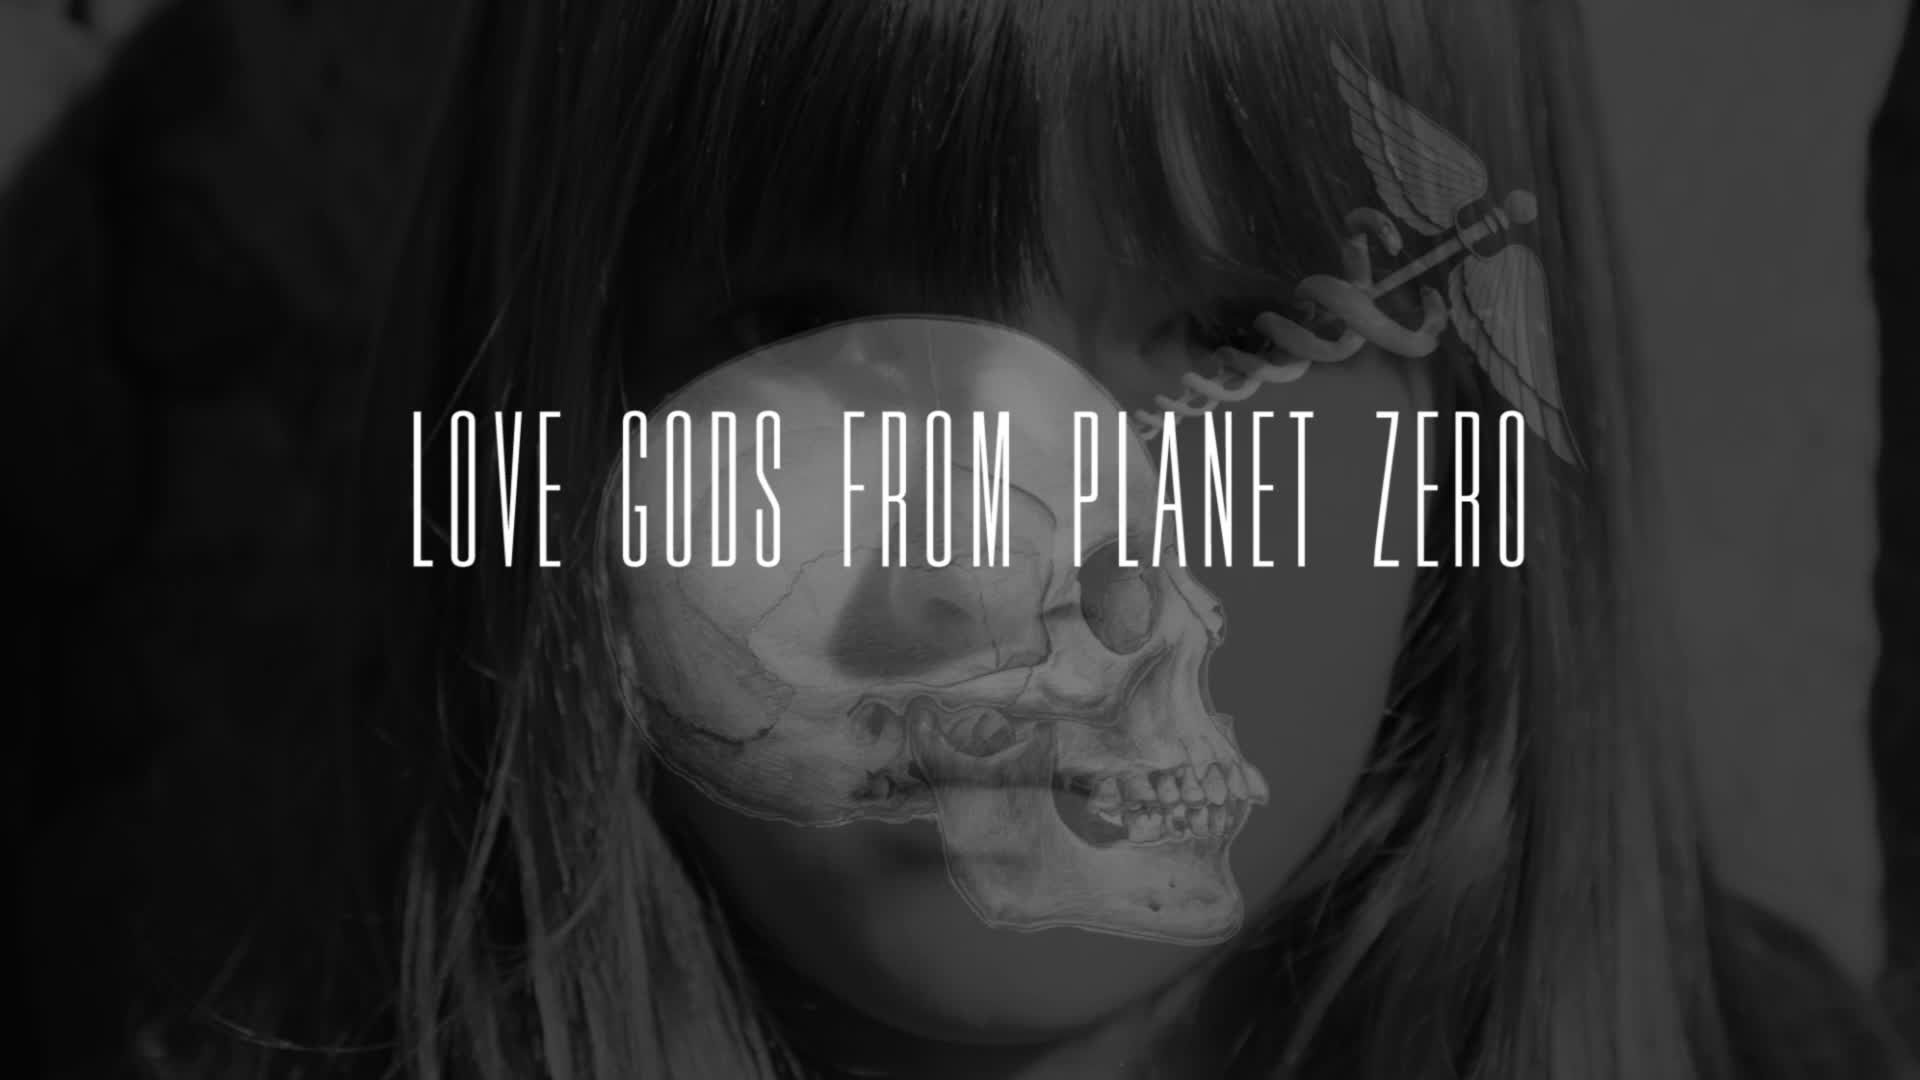 Love Gods from Planet Zero song free download